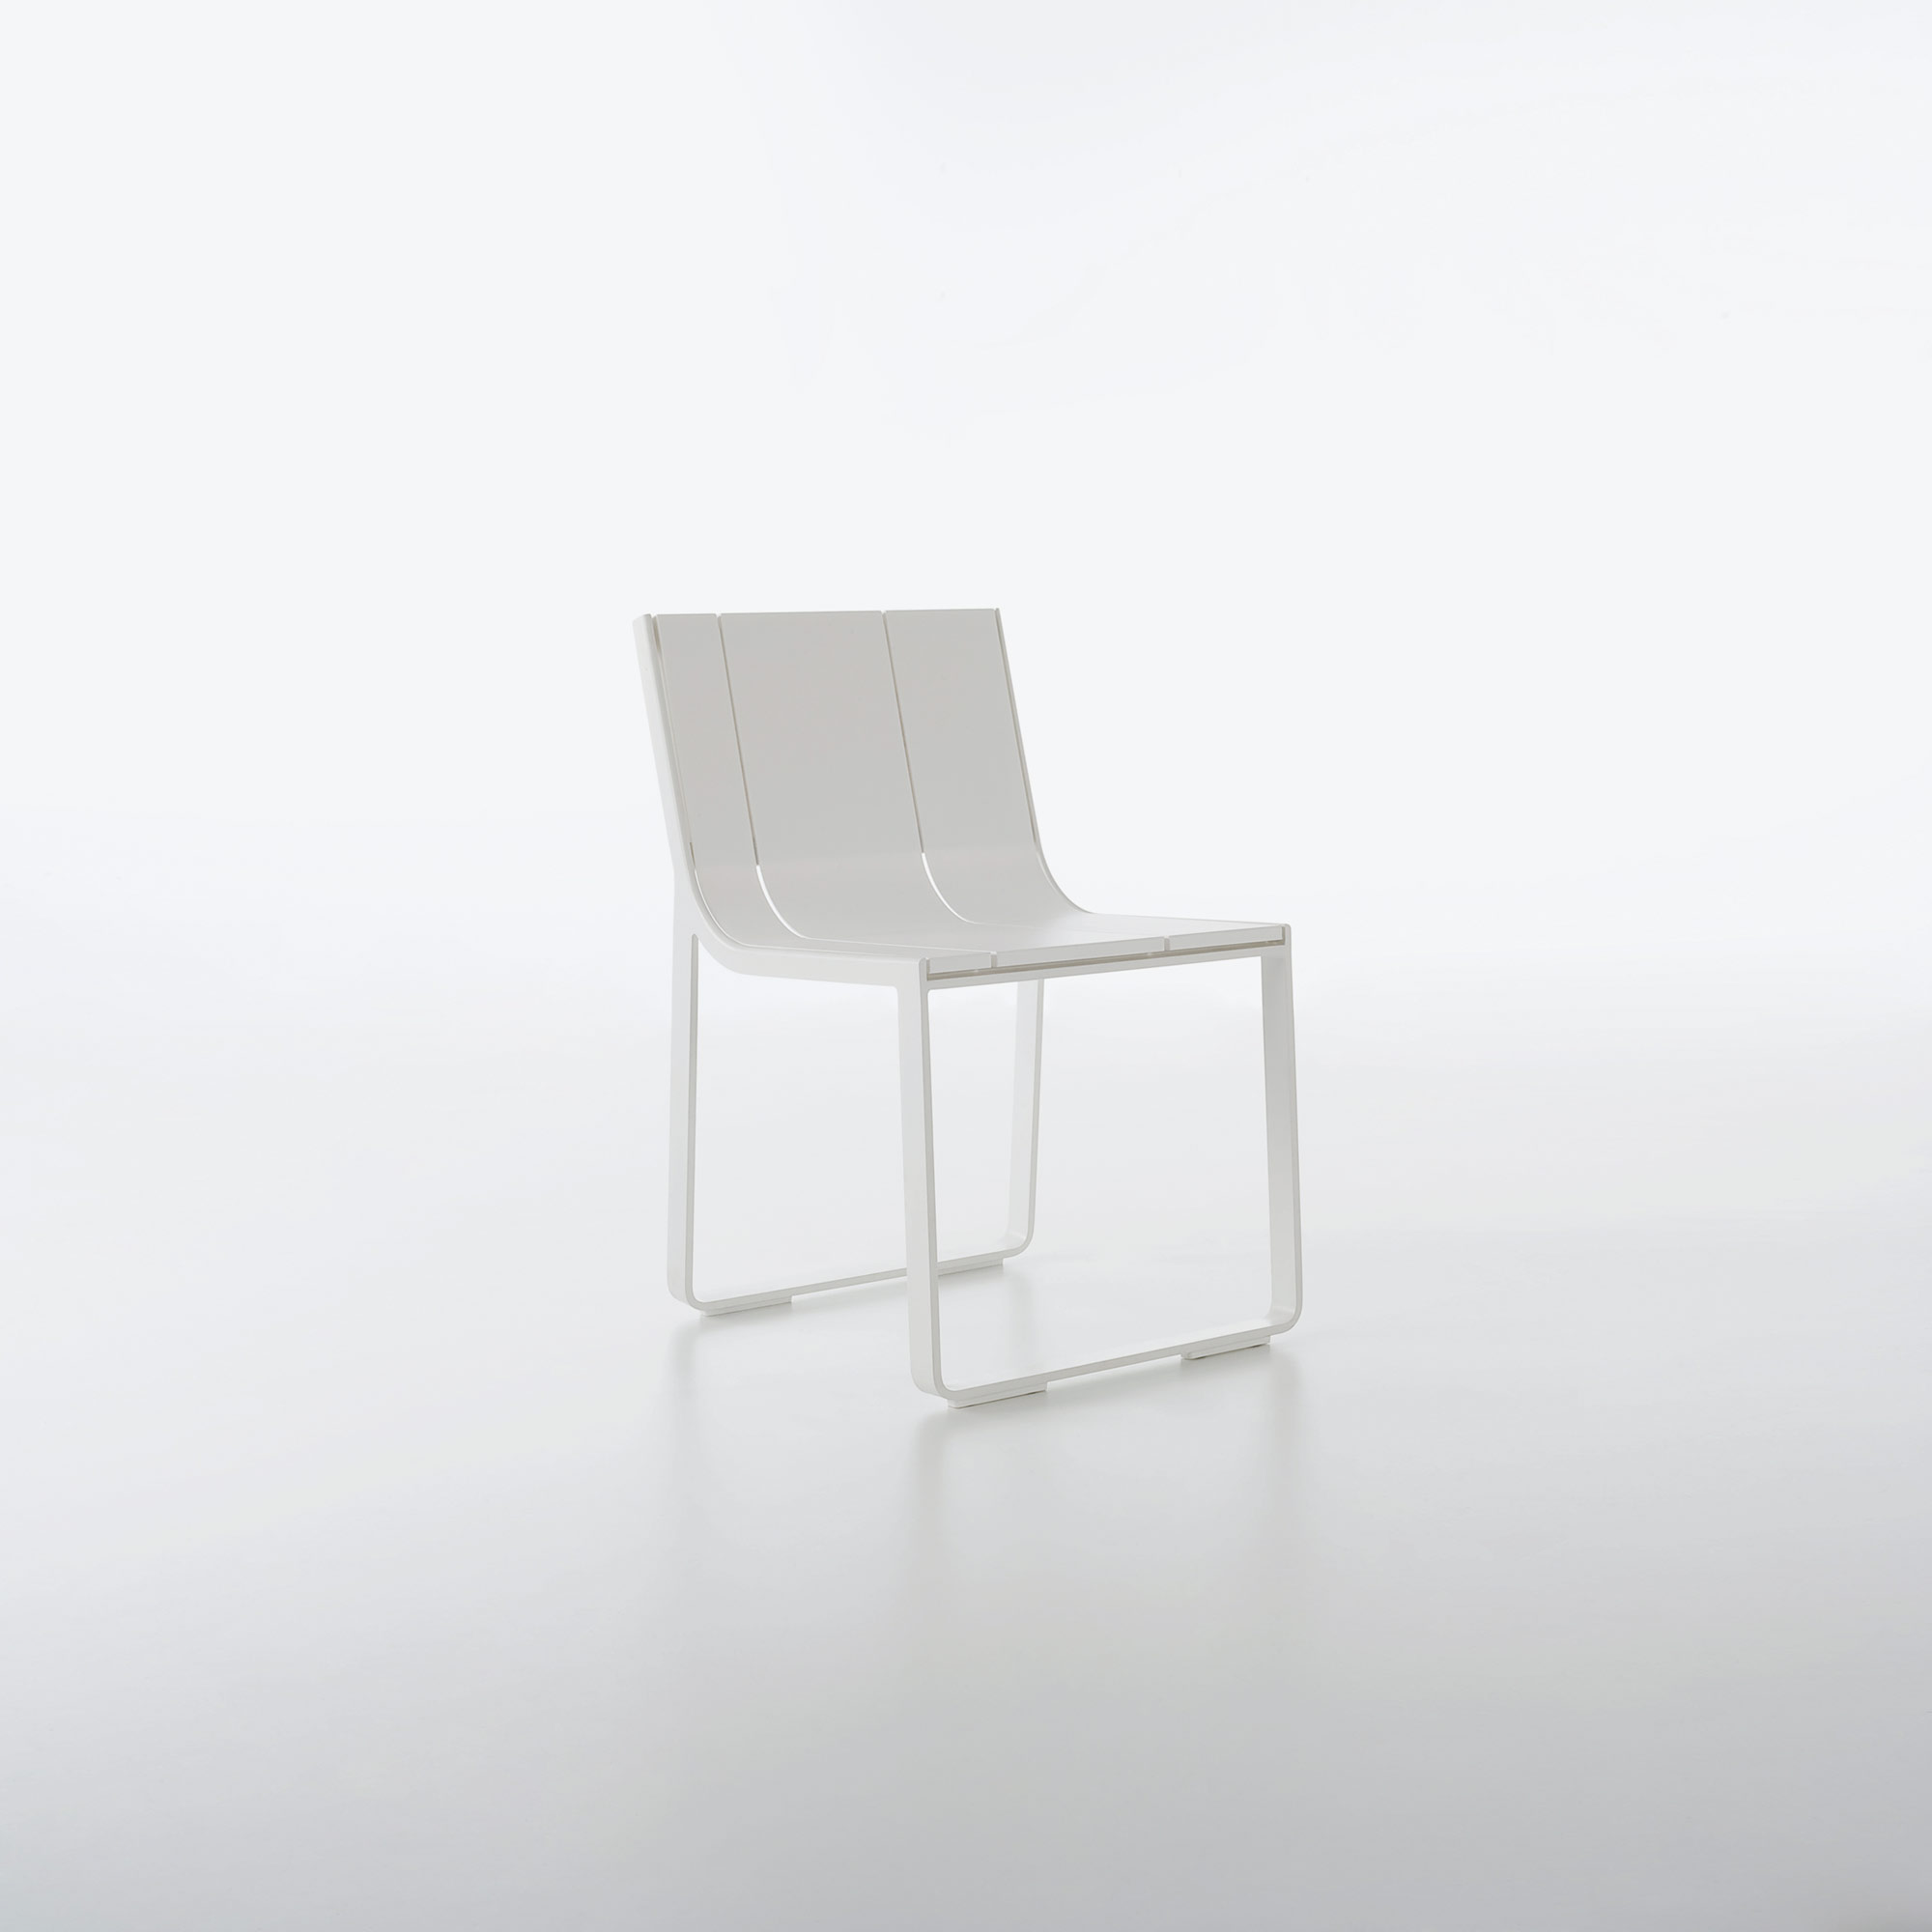 Flat Chairs